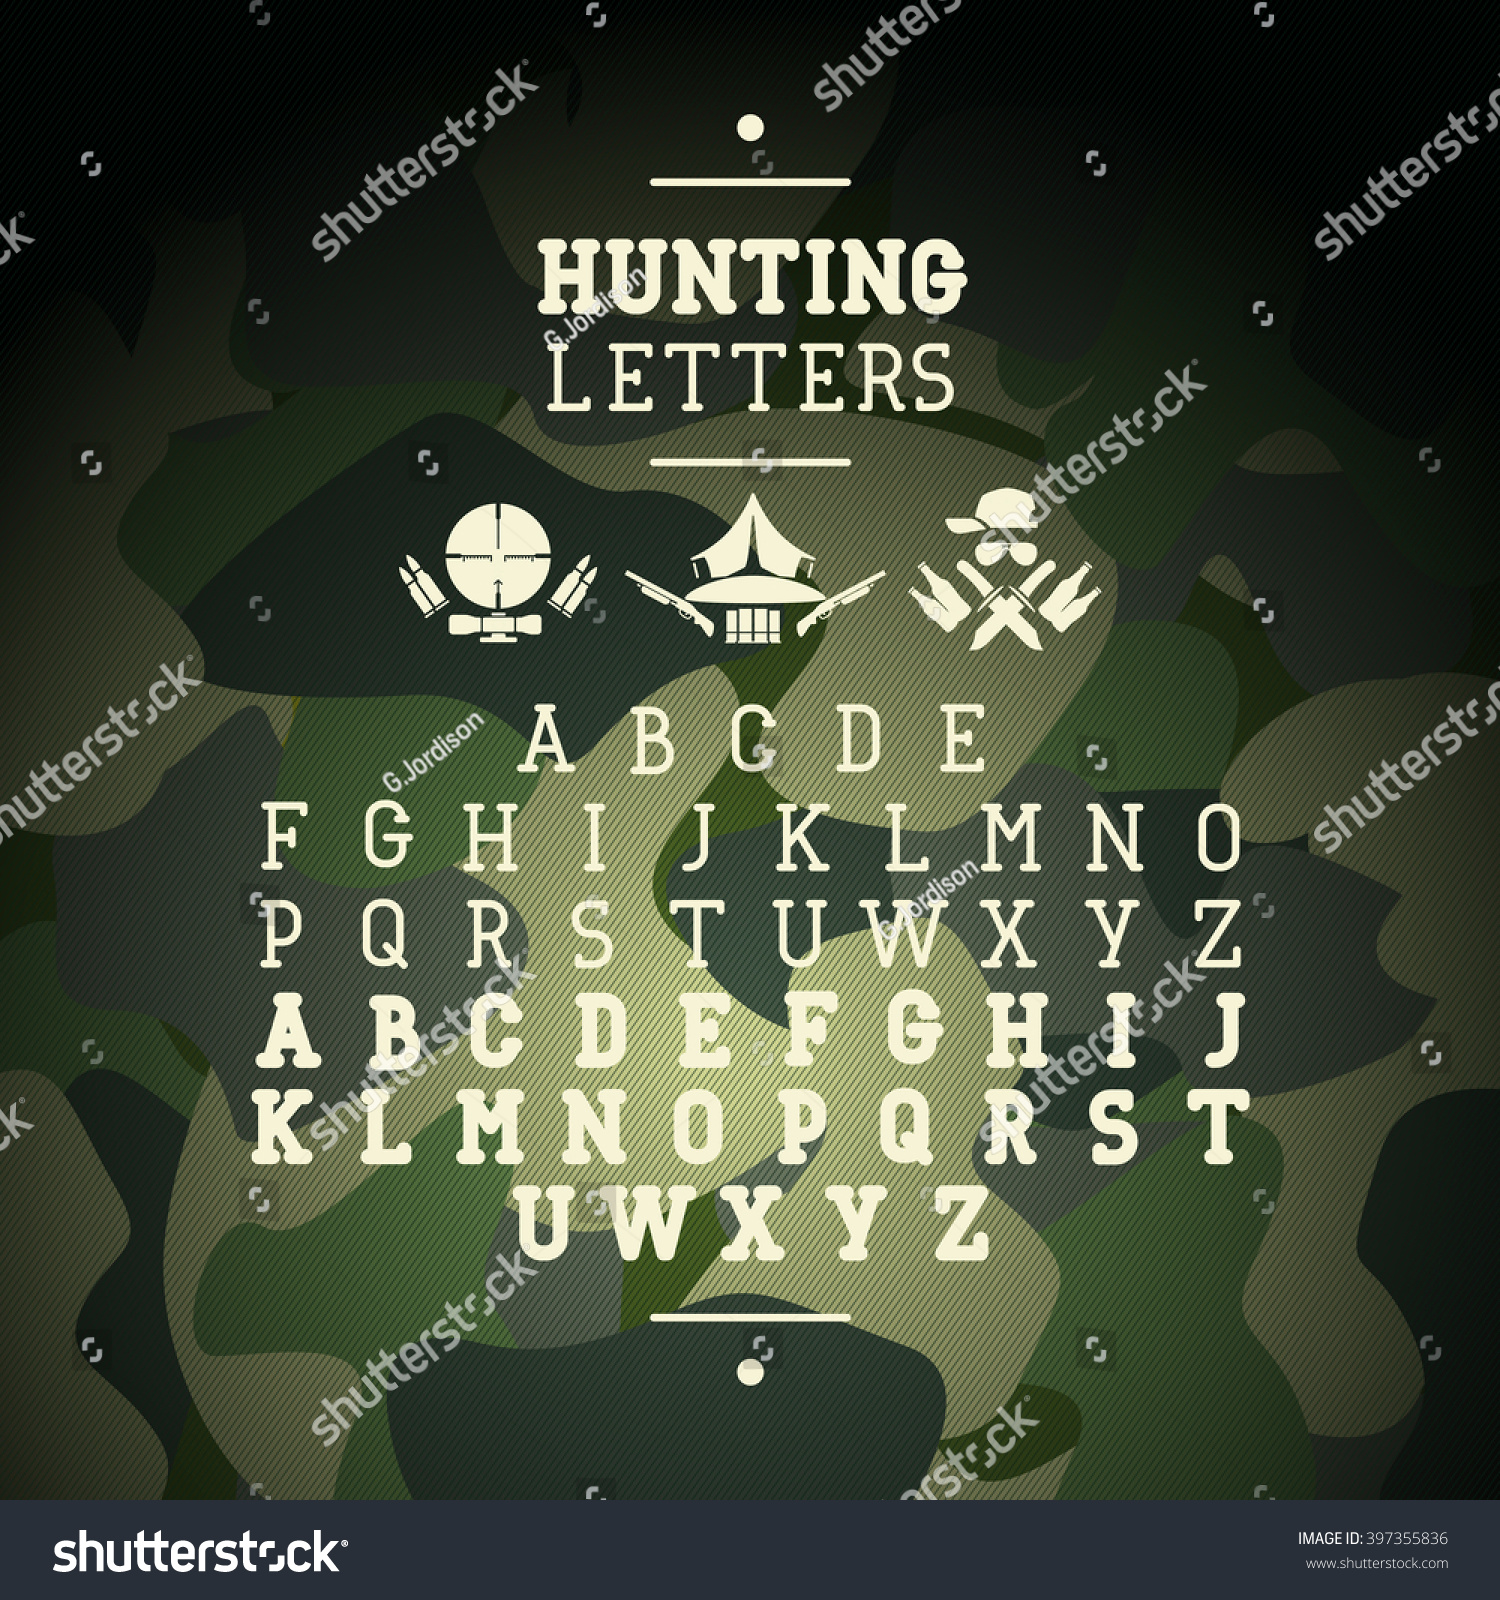 Lettering Serif Graphics Hunting Camouflage Background Stock